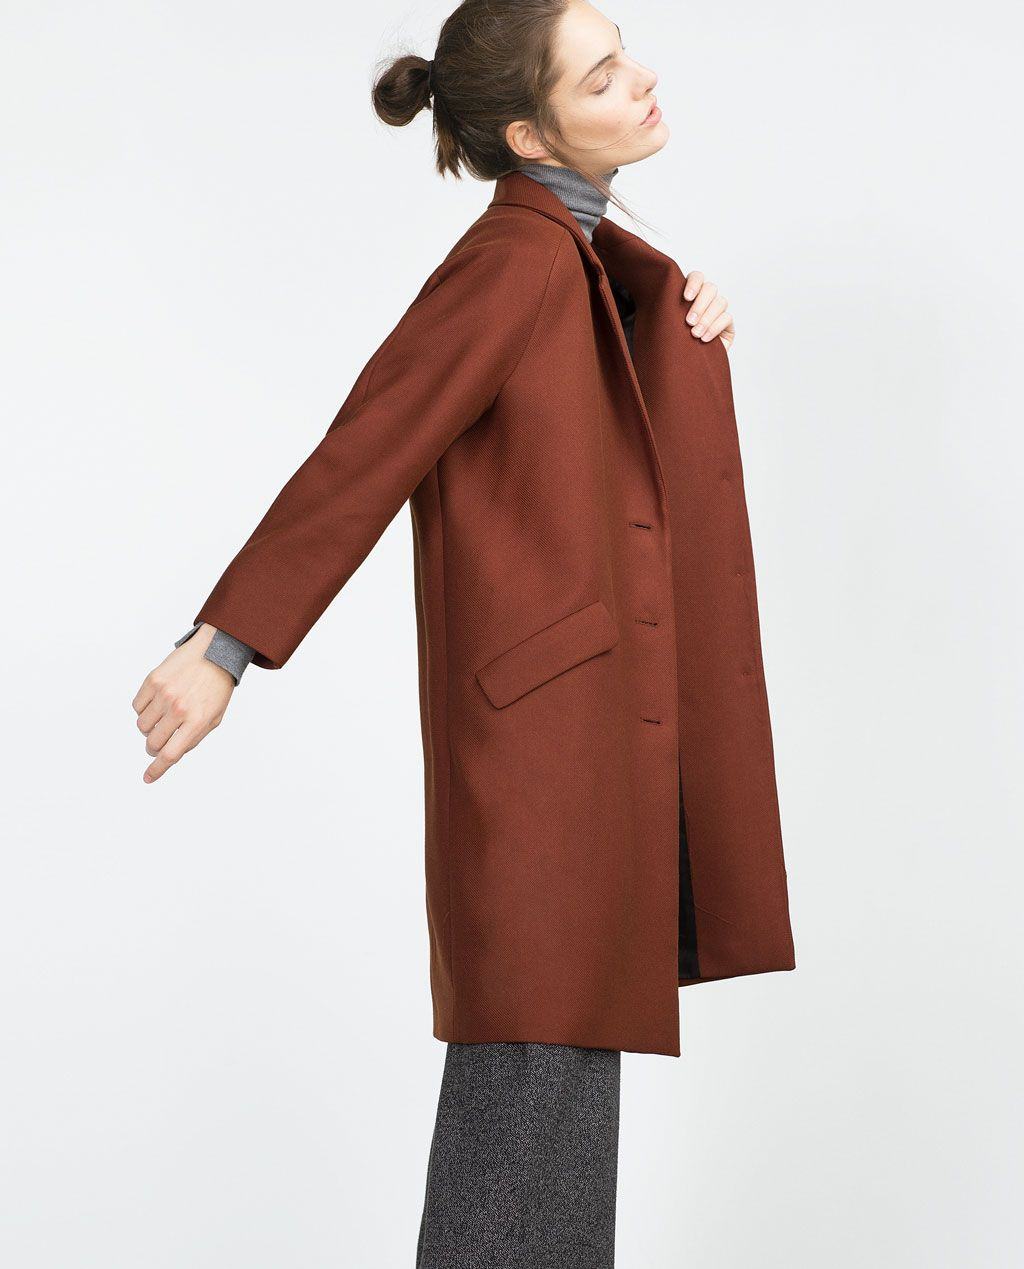 Coat With Flap Pockets Coats Outerwear Woman Zara United